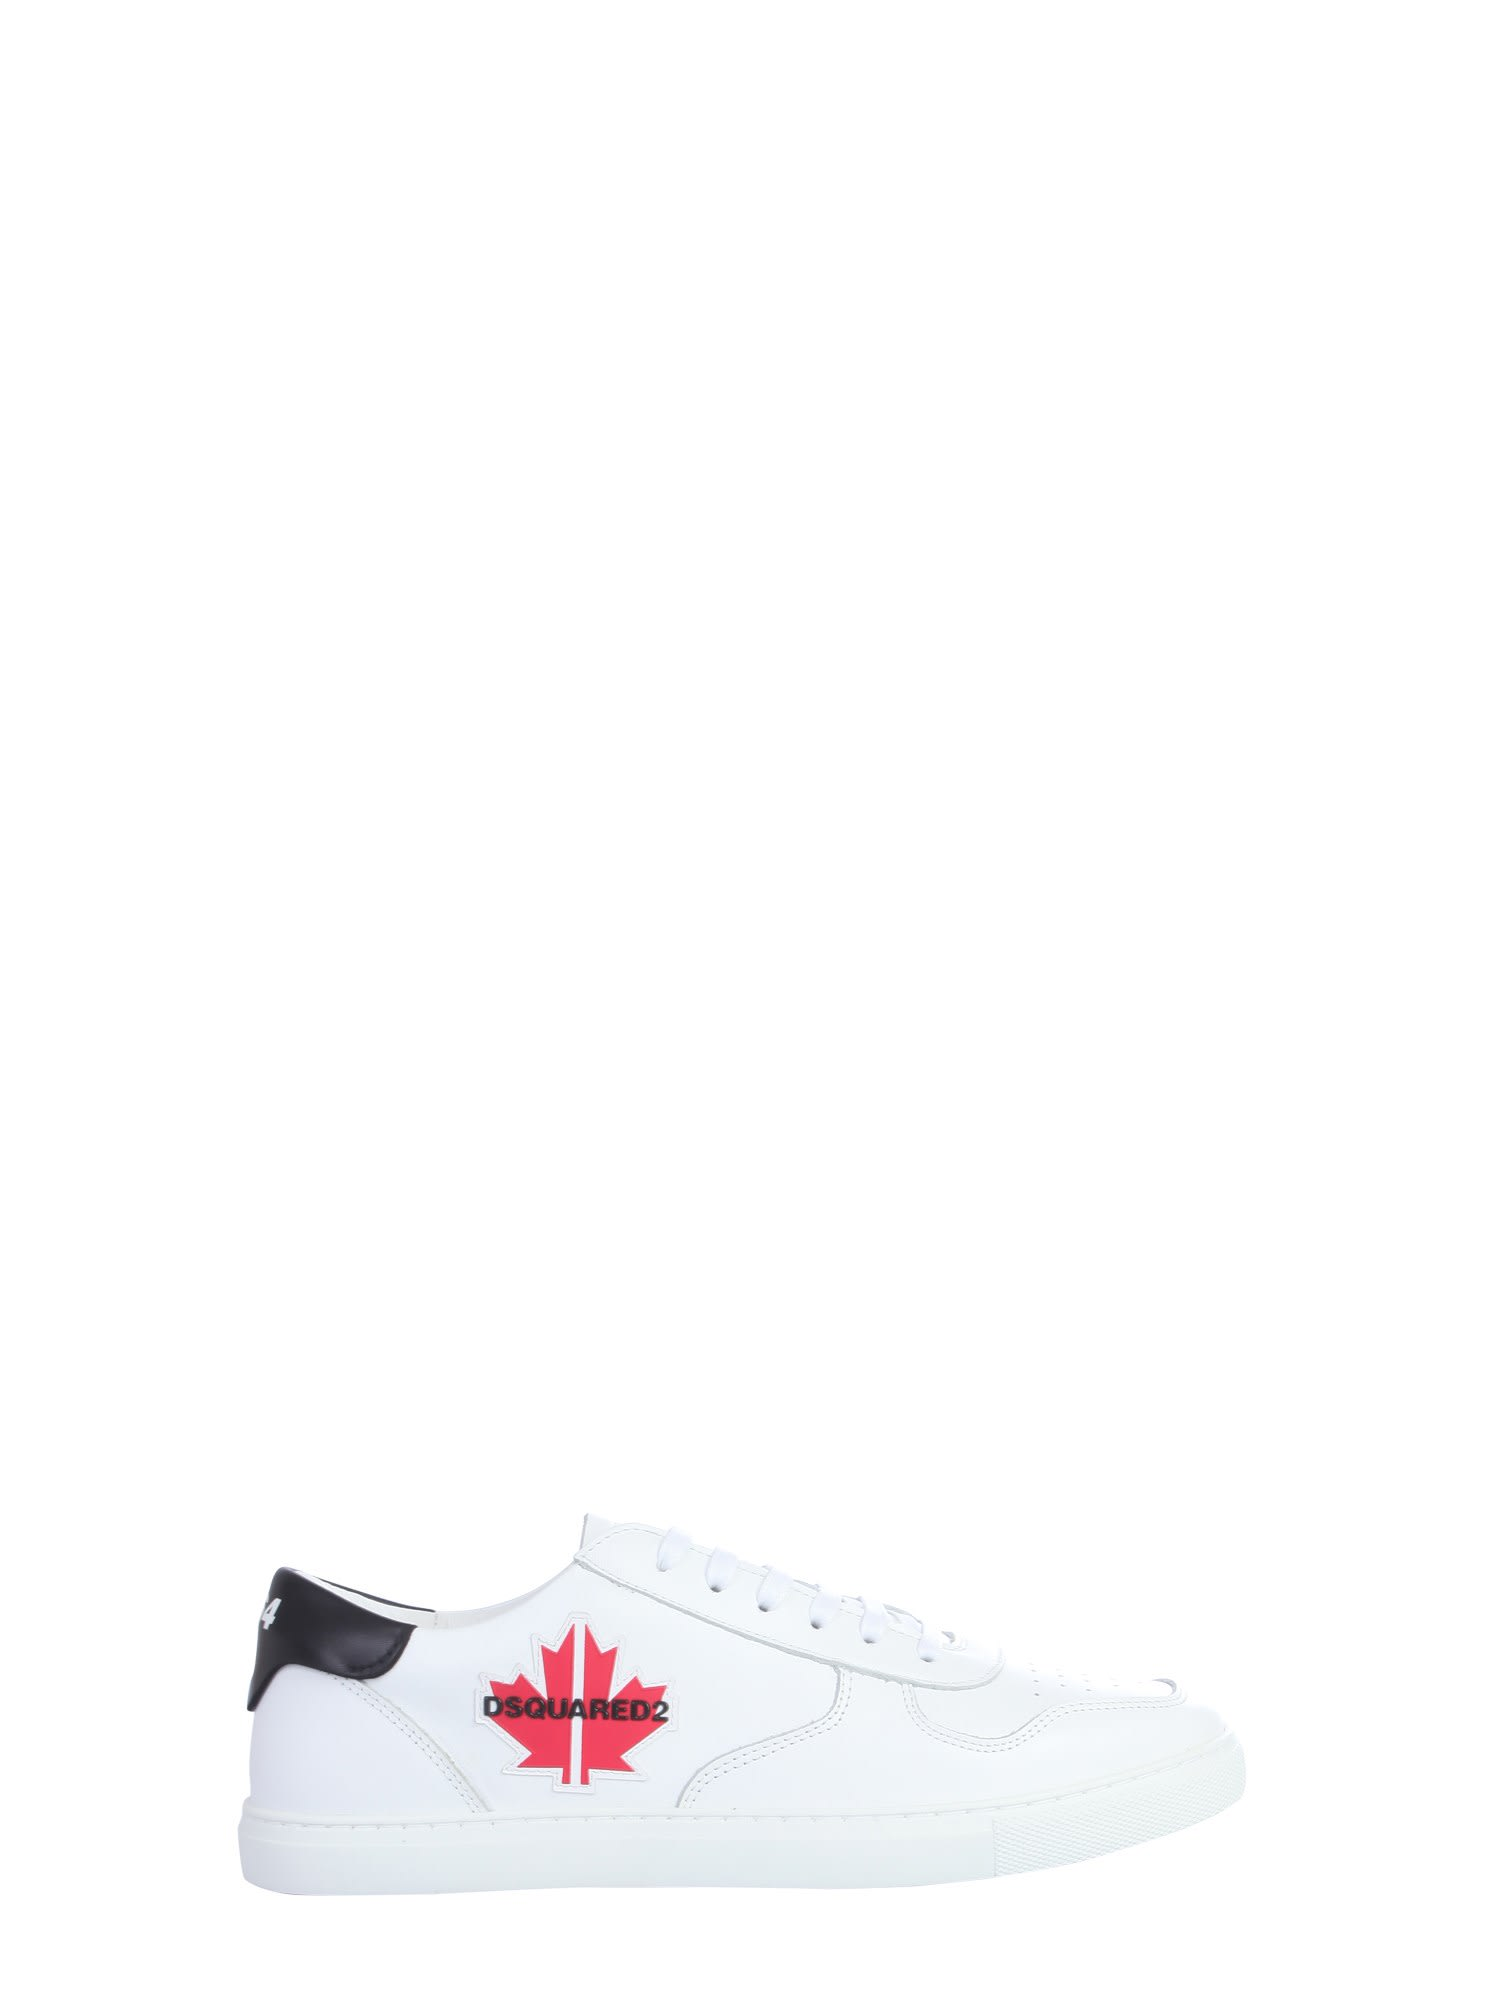 Maple Gym Sneakers